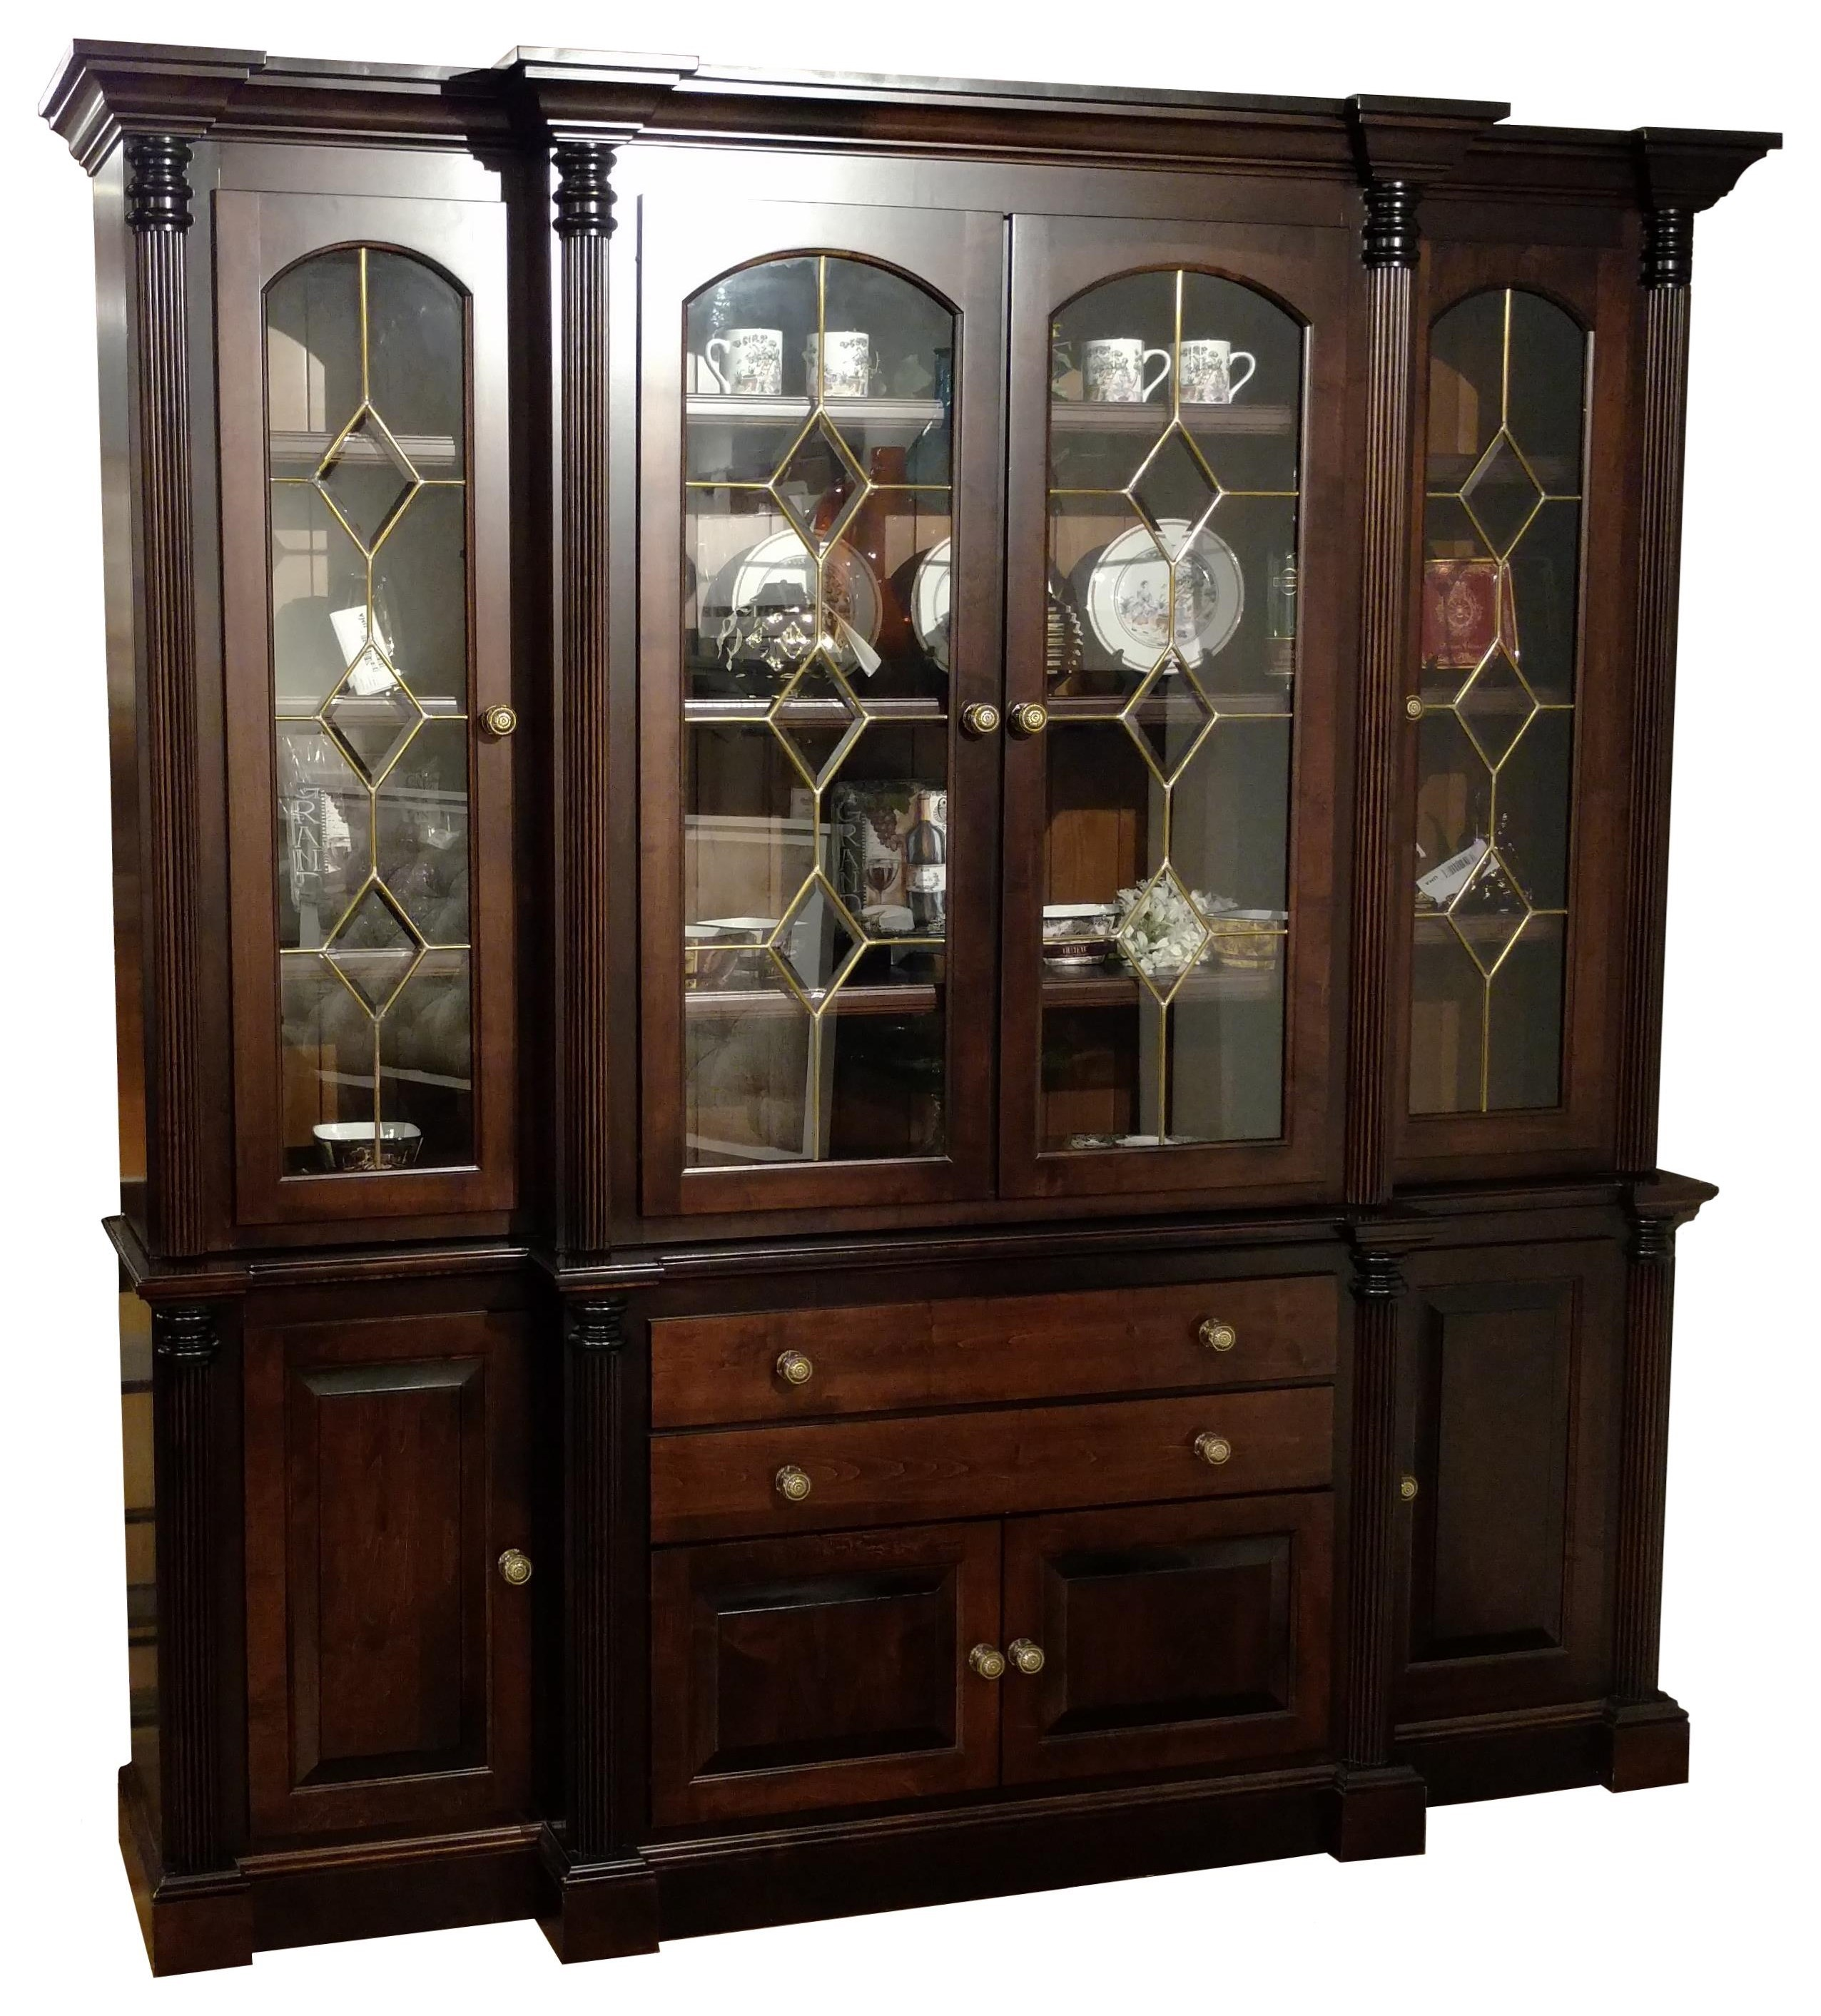 Superbe Wayside Custom Furniture Amish Clearance 2pc China Cabinet